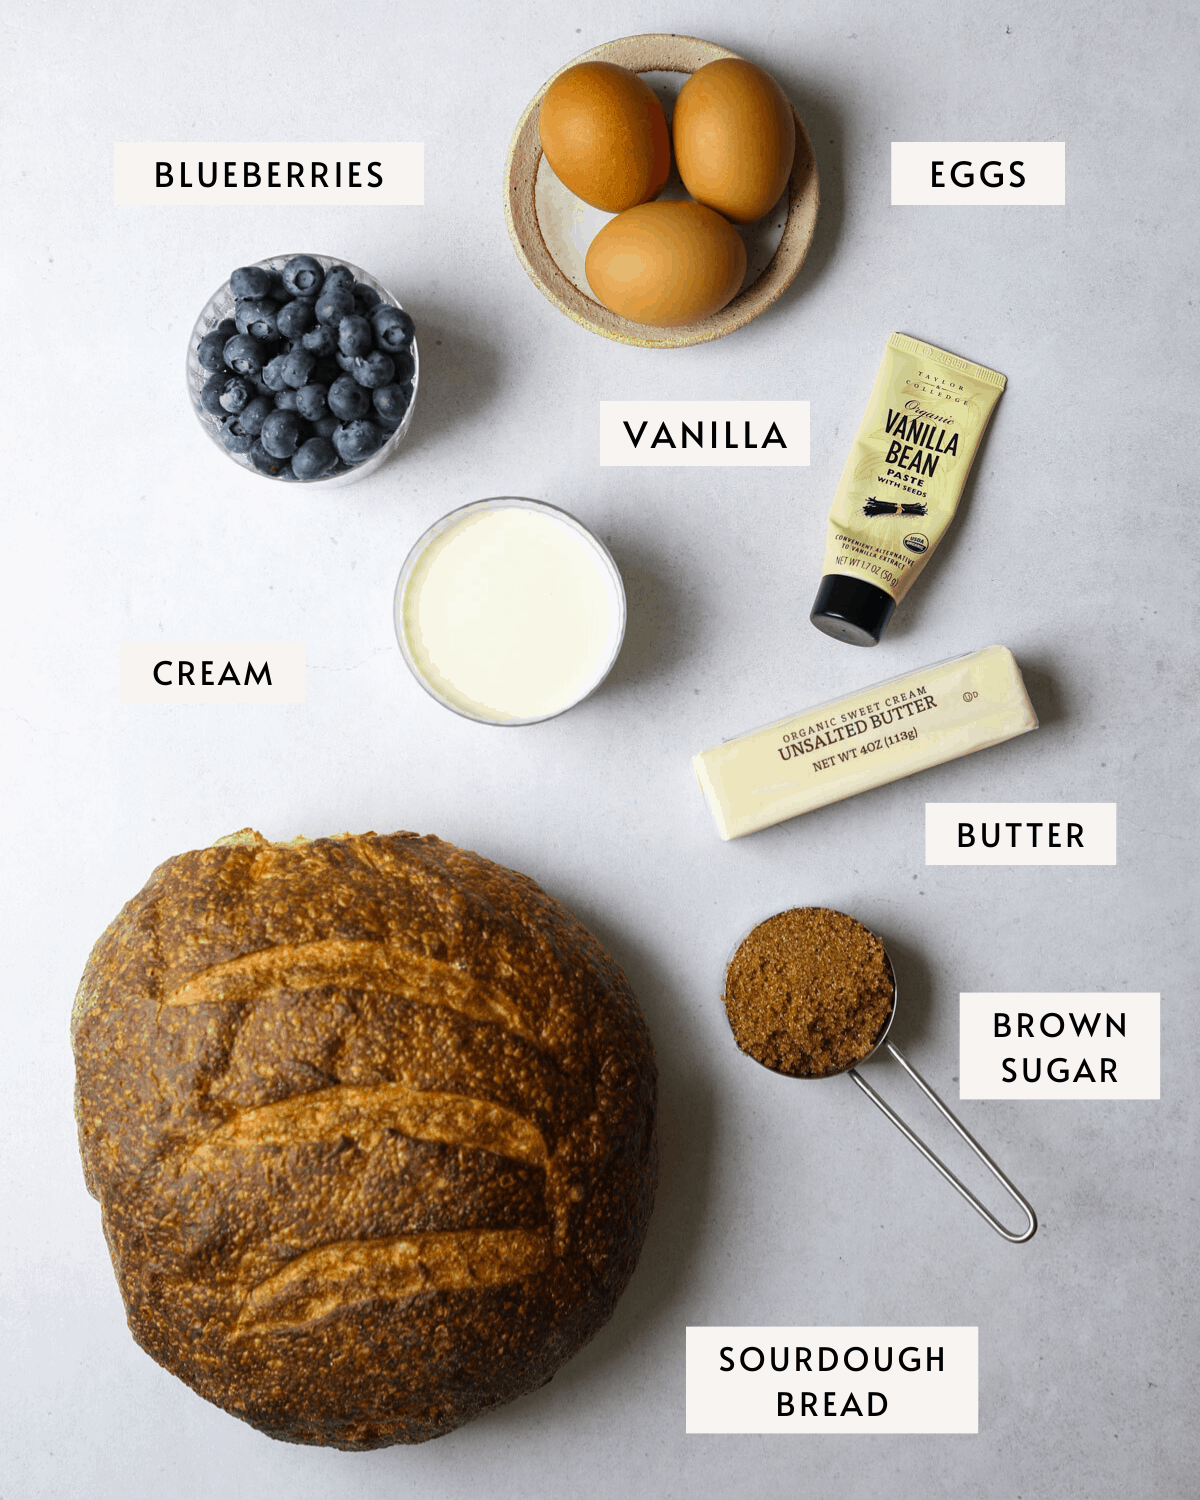 recipe ingredients: a loaf of sour dough bread, vanilla, eggs, blueberries, cream and brown sugar